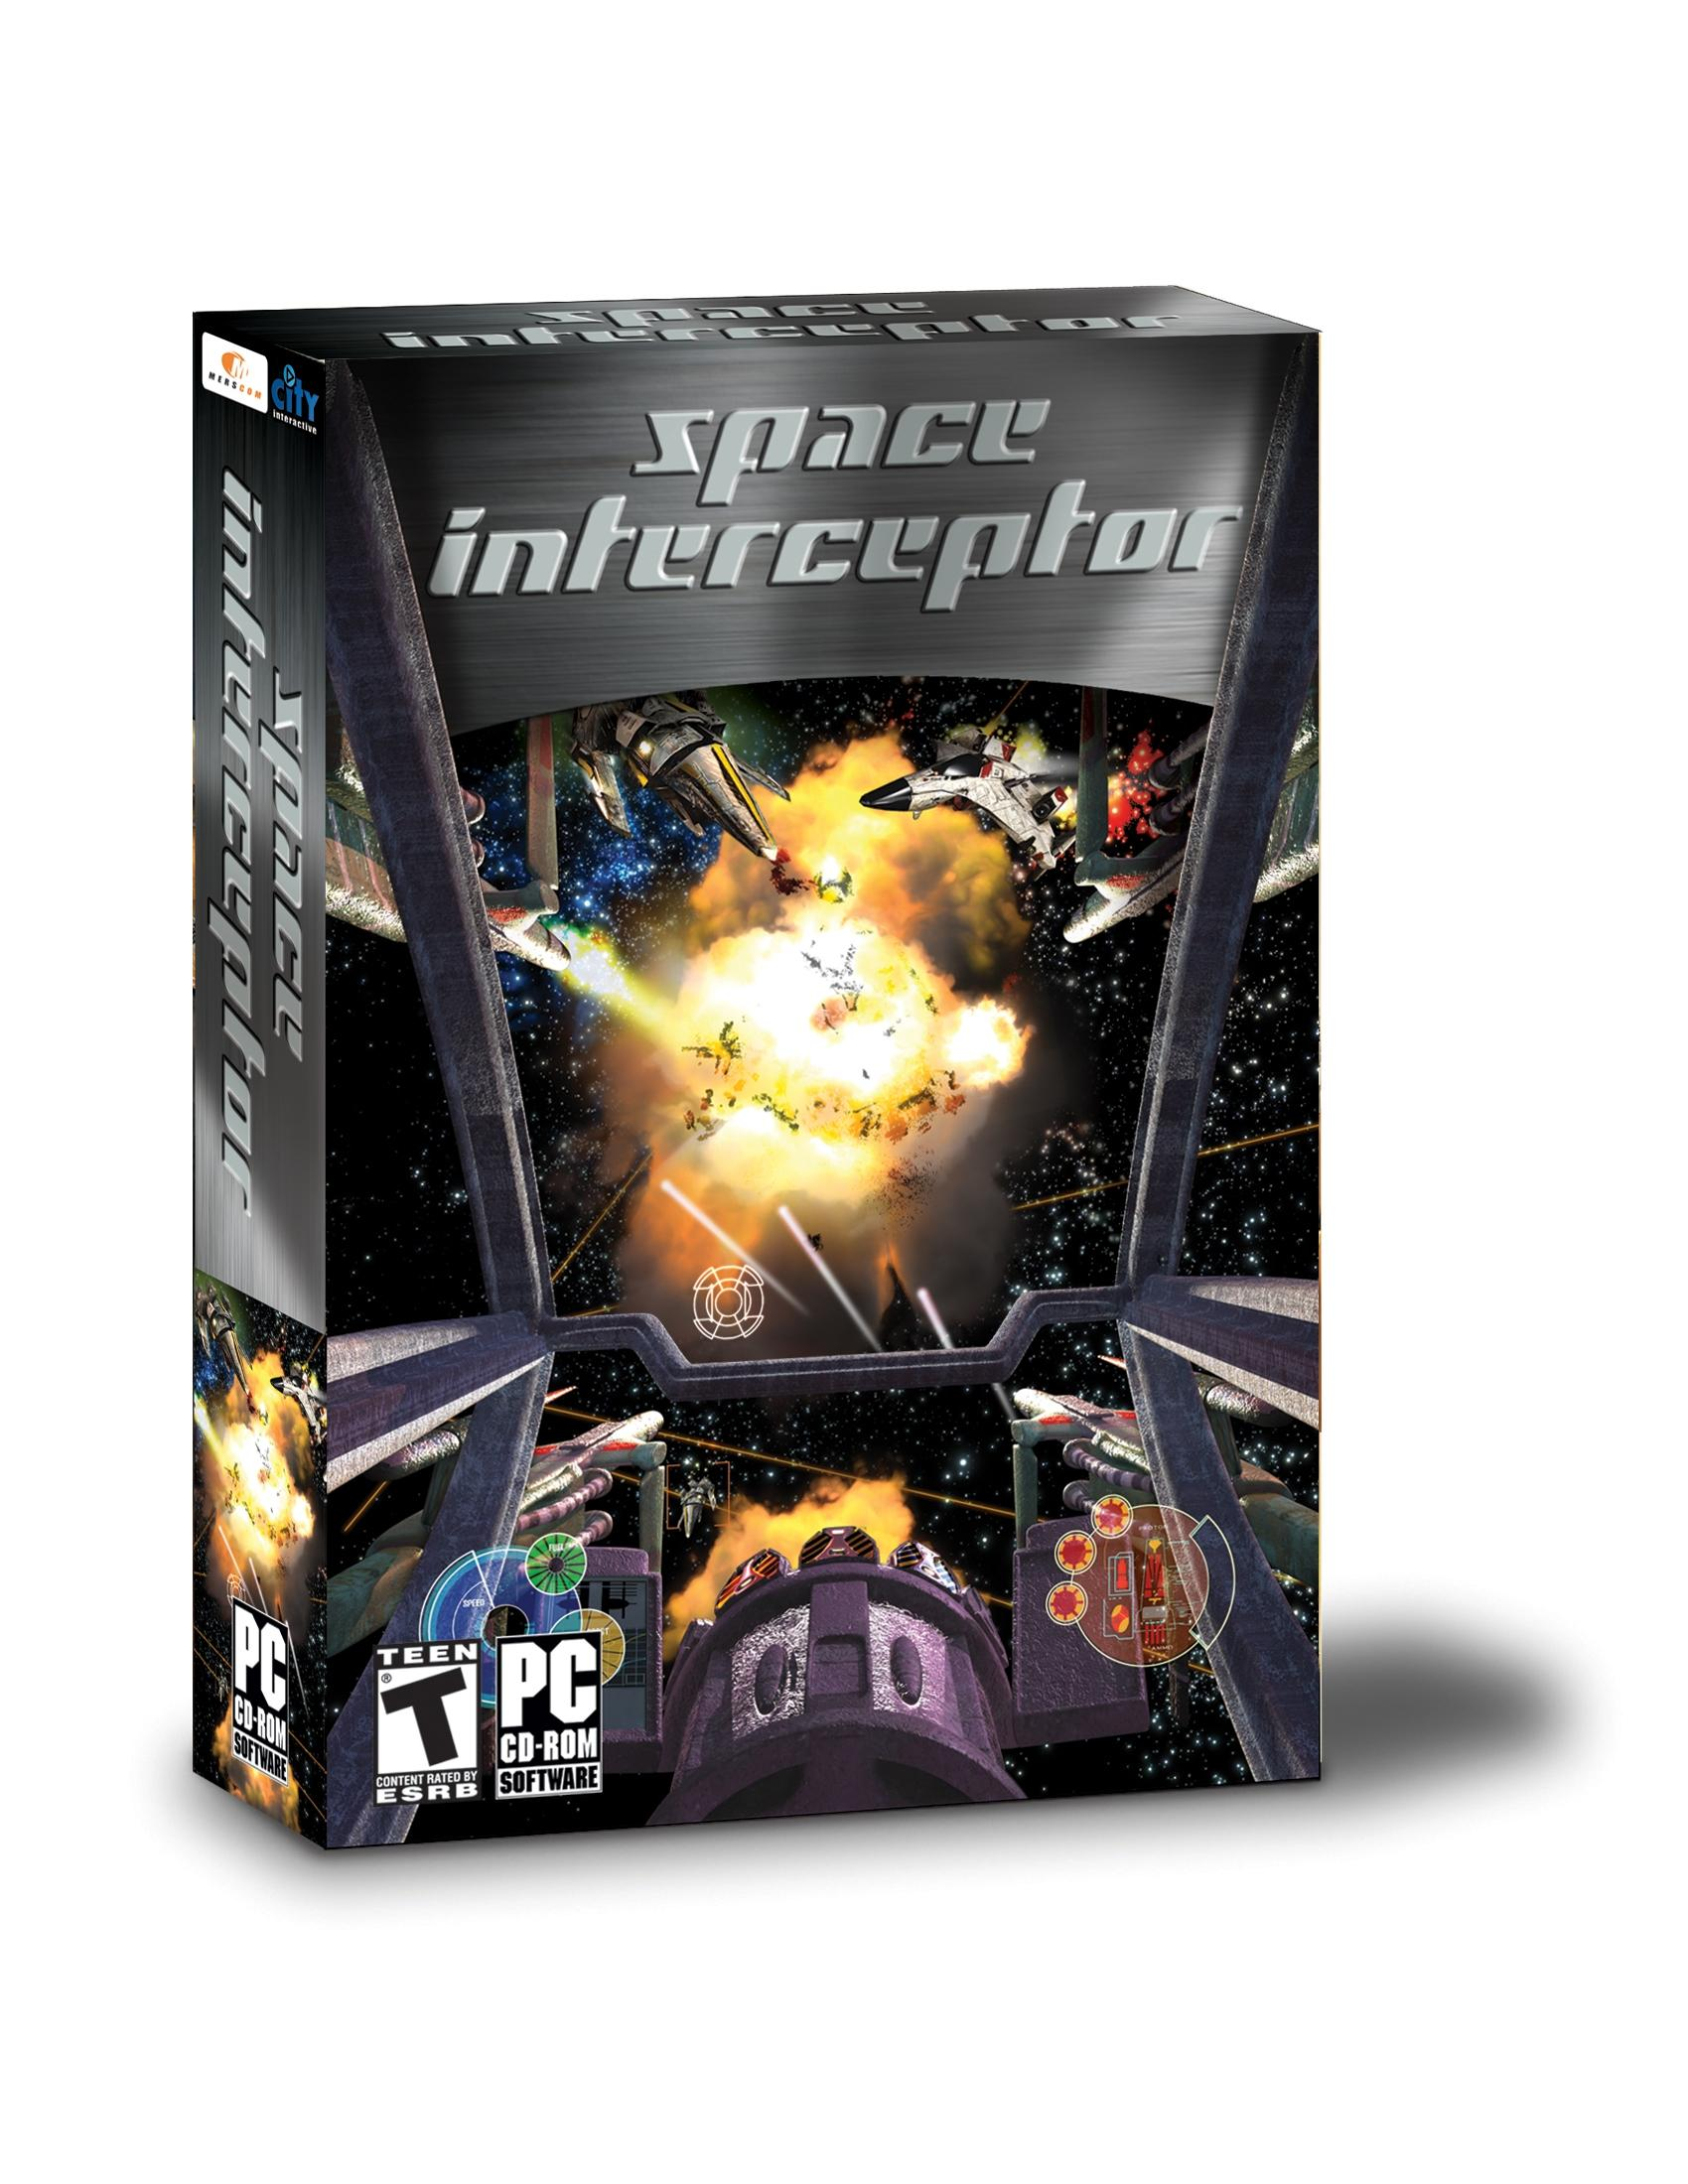 Space Interceptor: Project Freedom is gold 383Wsv771